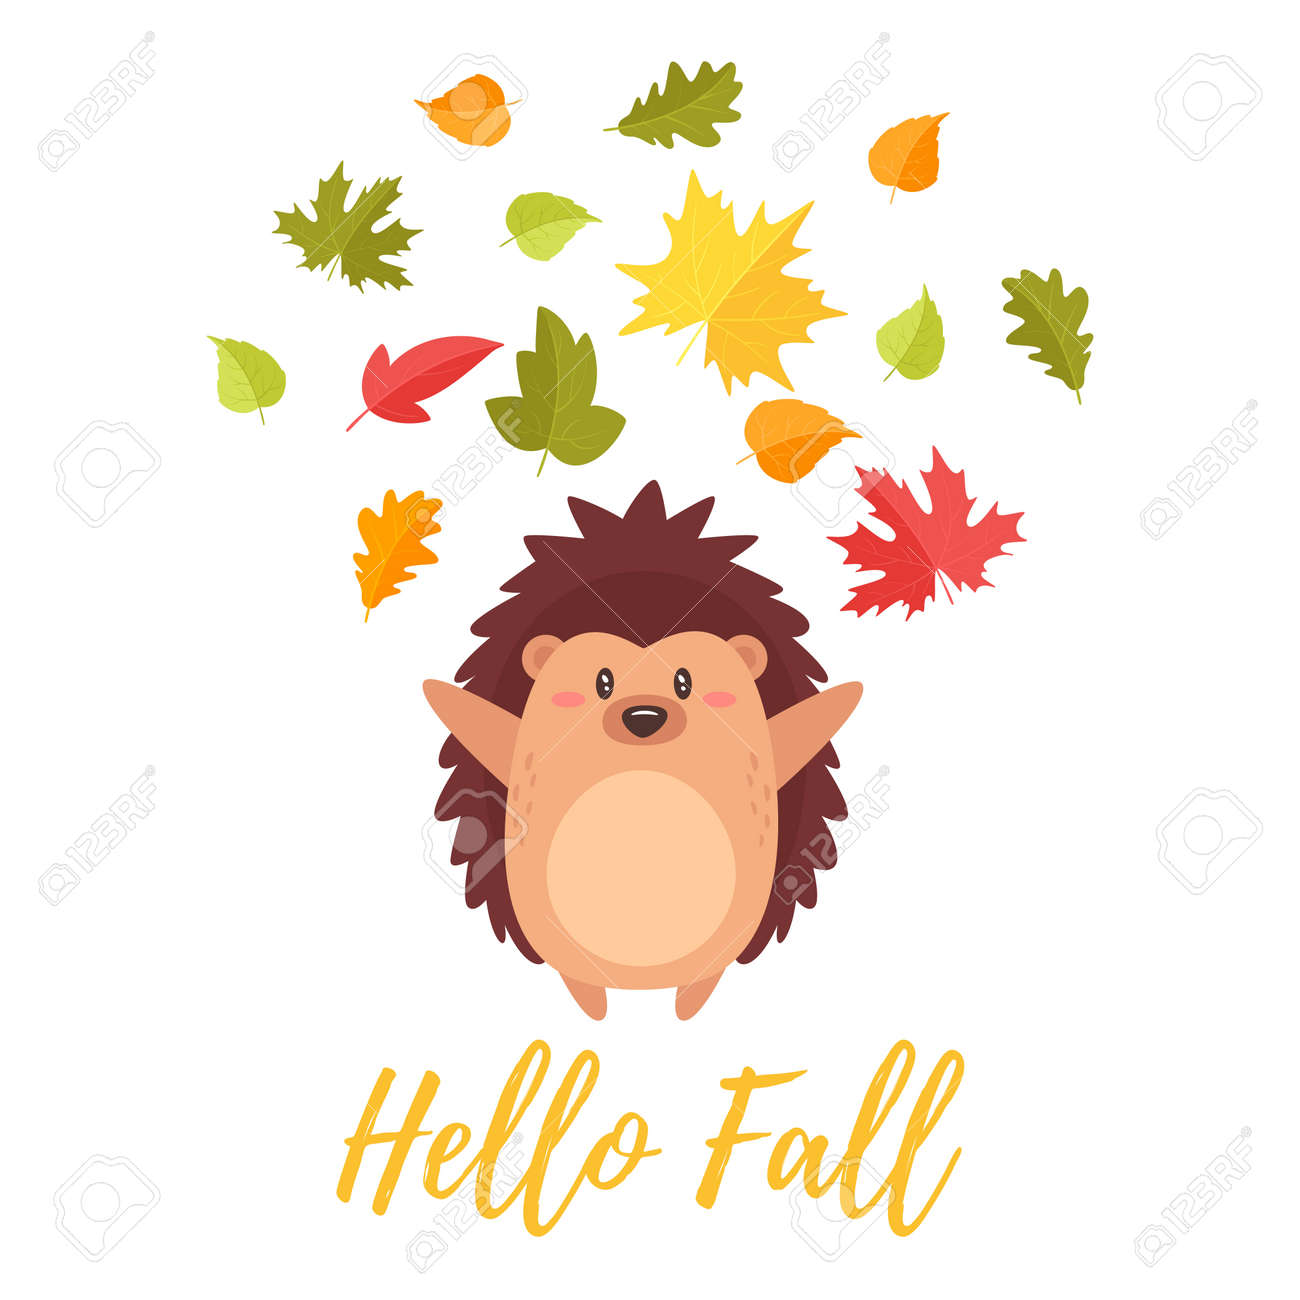 Cartoon Vector Style Illustration Of Cute Hedgehog Tossing Autumn Royalty Free Cliparts Vectors And Stock Illustration Image 99430174